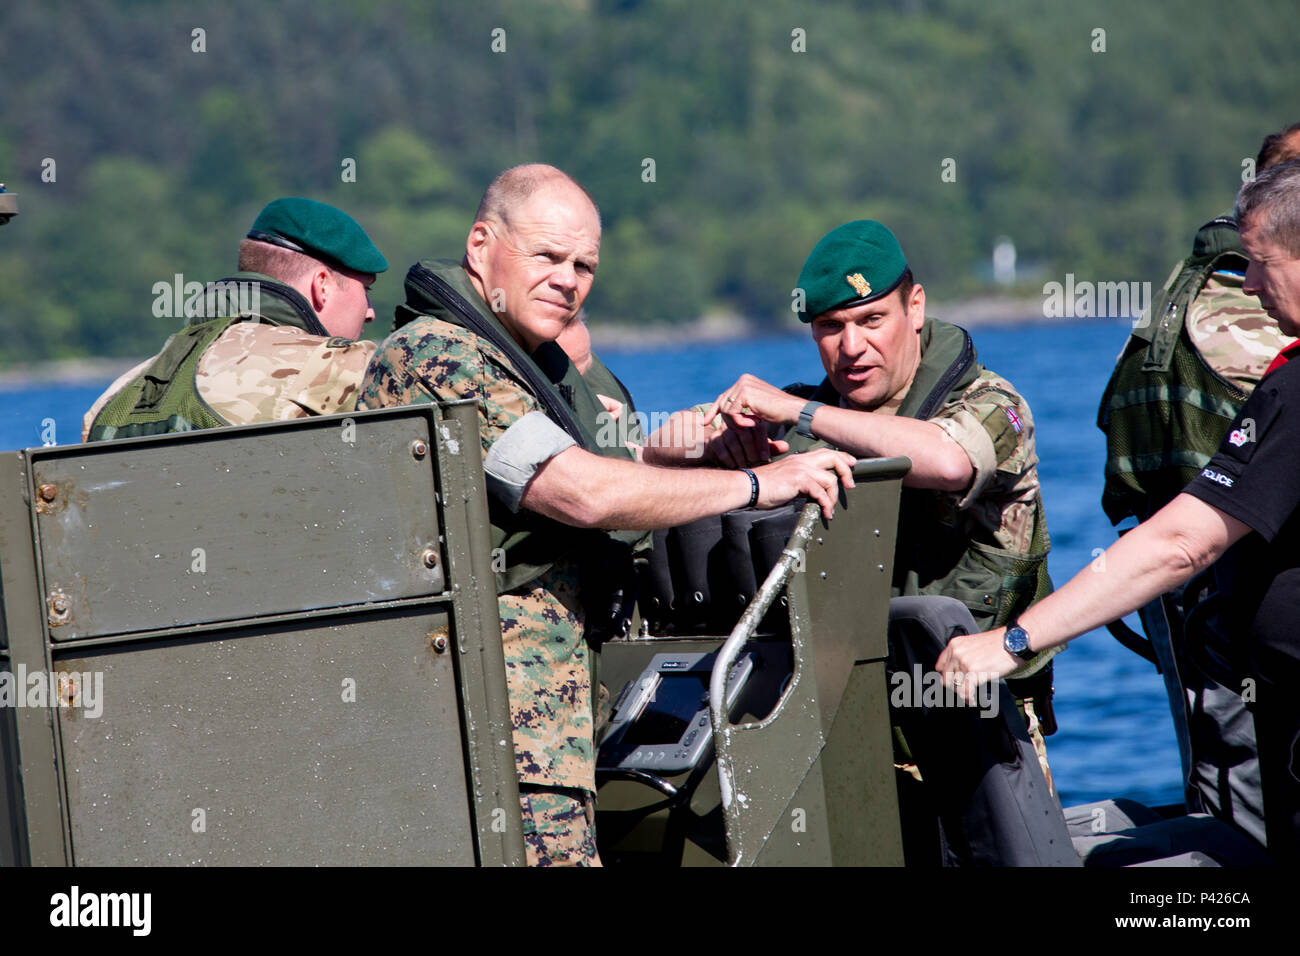 Commandant of the Marine Corps, Gen. Robert B. Neller, center, rides in a offshore raiding craft at Her Majesty's Naval Base, Clyde, Scotland, June 2, 2016. Neller visited the 43 Commando Fleet Protection Group Royal Marines to view their equipment and understand their capabilities. (U.S. Marine Corps photo by Staff Sgt. Gabriela Garcia/Released) - Stock Image